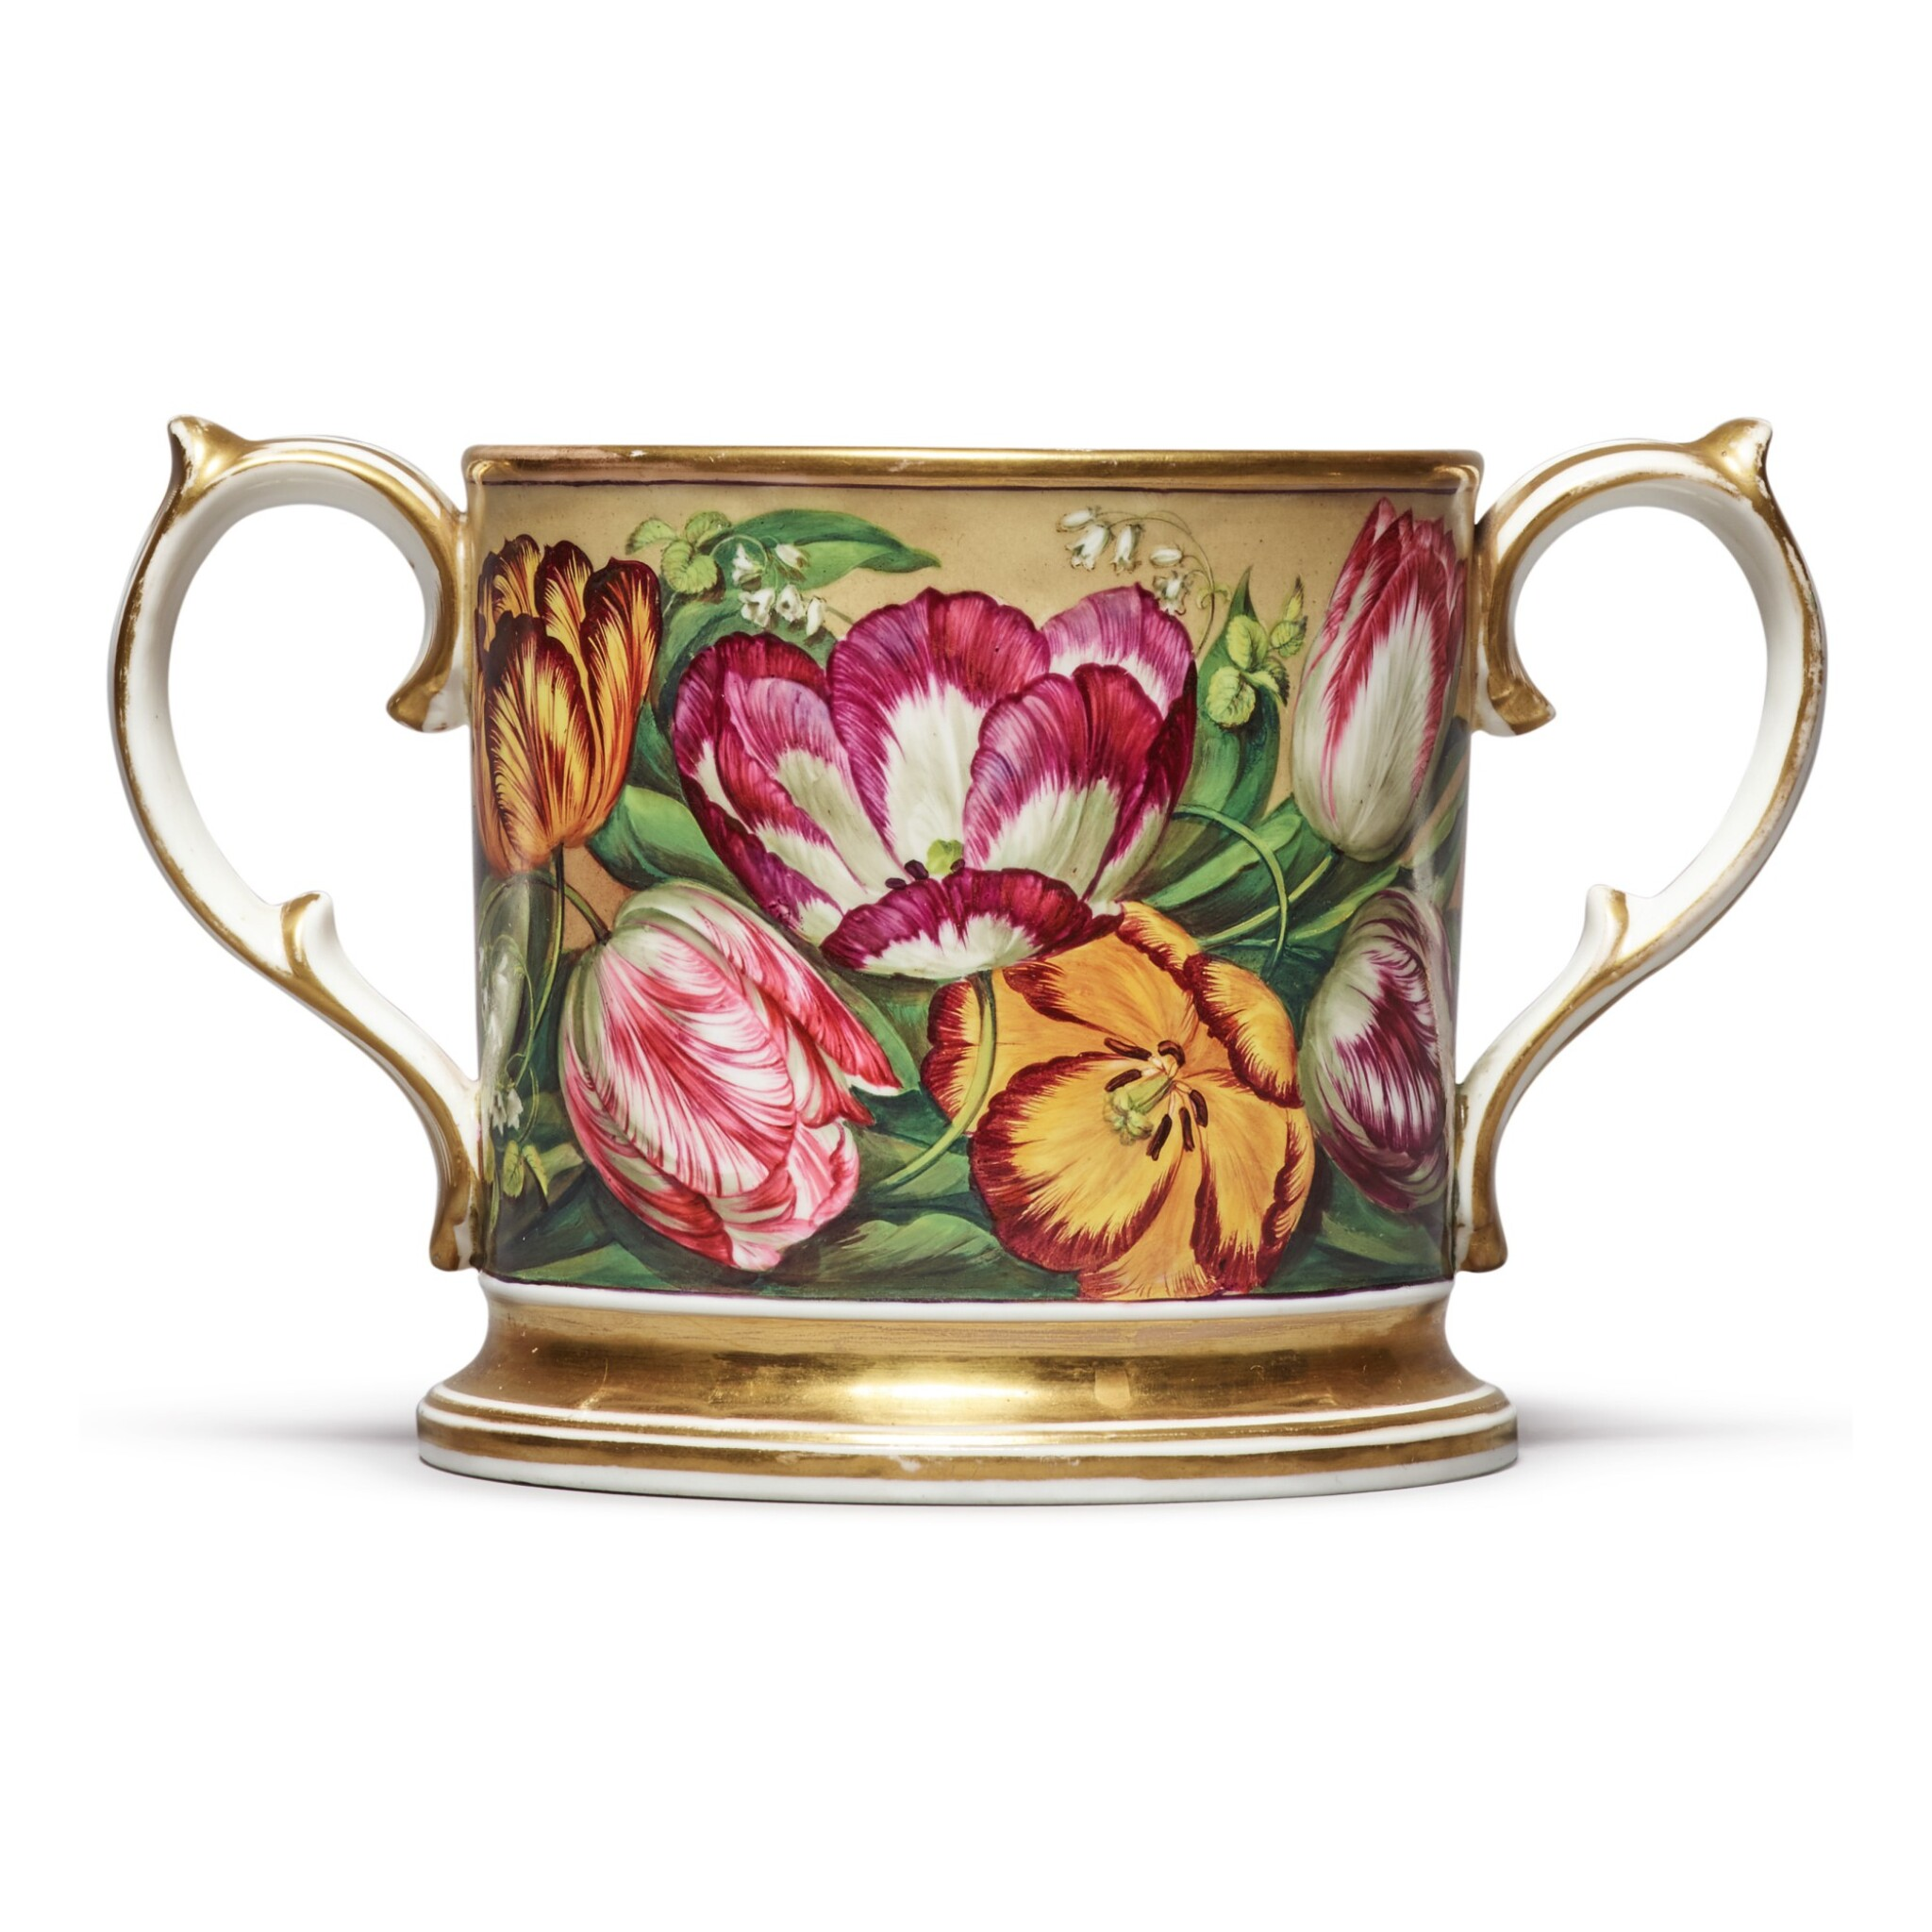 View full screen - View 1 of Lot 145. AN ENGLISH PORCELAIN LOVING CUP, CIRCA 1820.